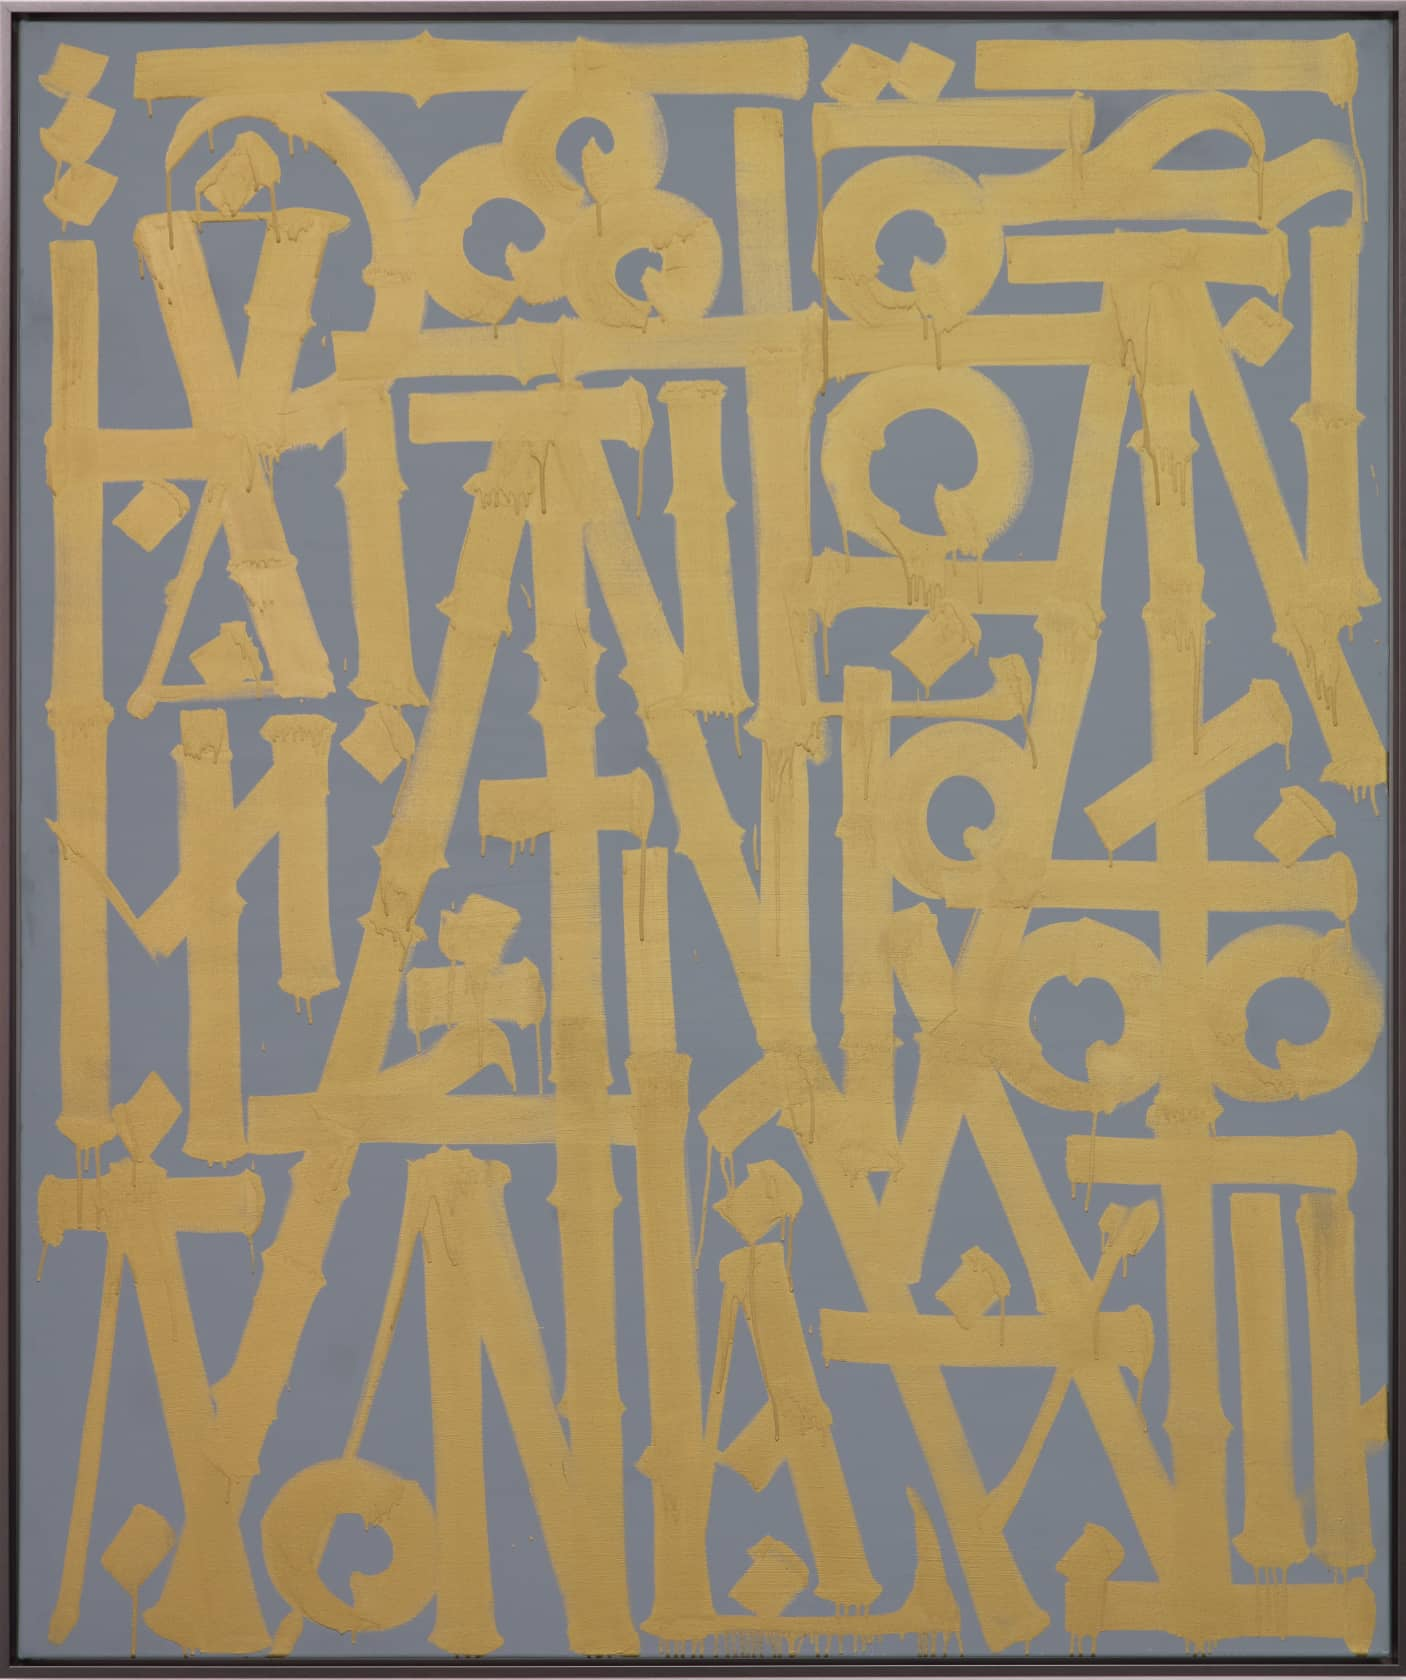 Retna De Los Cielos Hasta La Tierra Mejor Enamel and Acrylic on Canvas